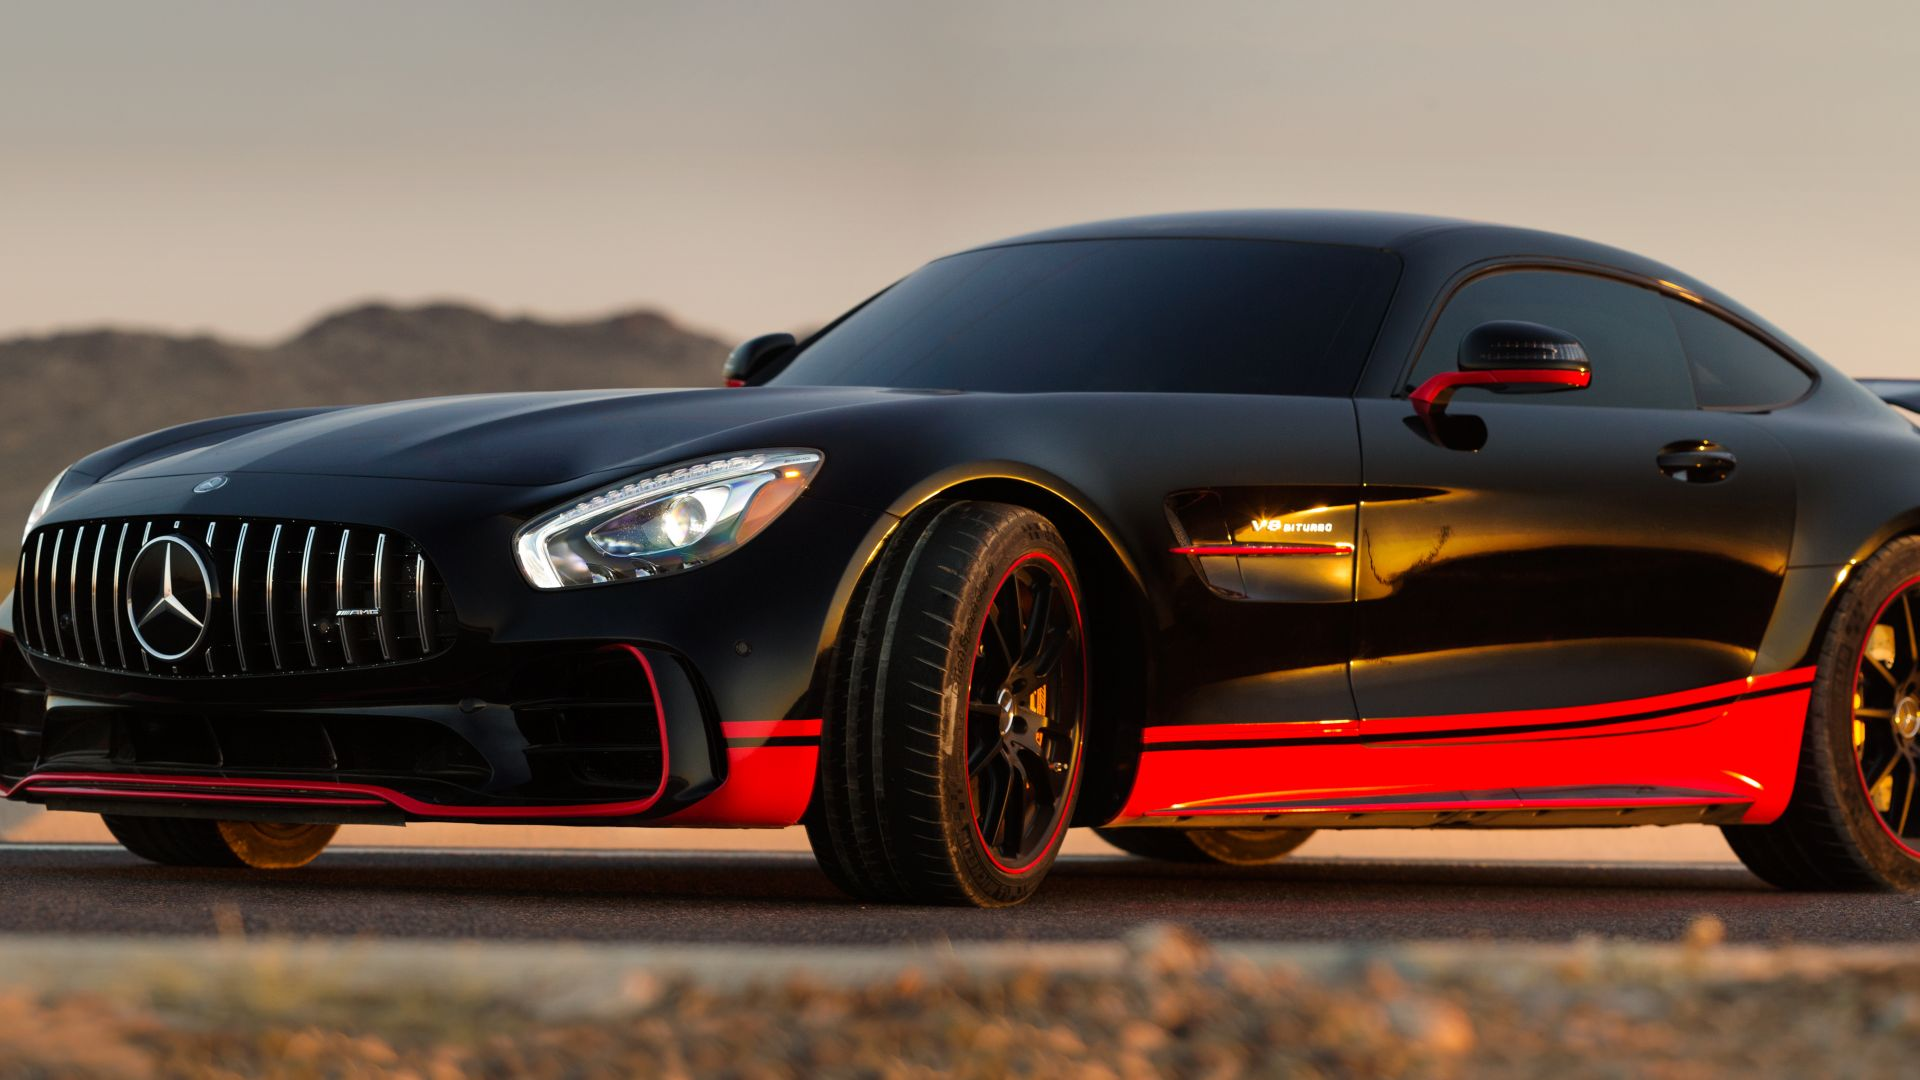 Mercedes Benz AMG GT R, Drift, Transformers: The Last Knight (horizontal)